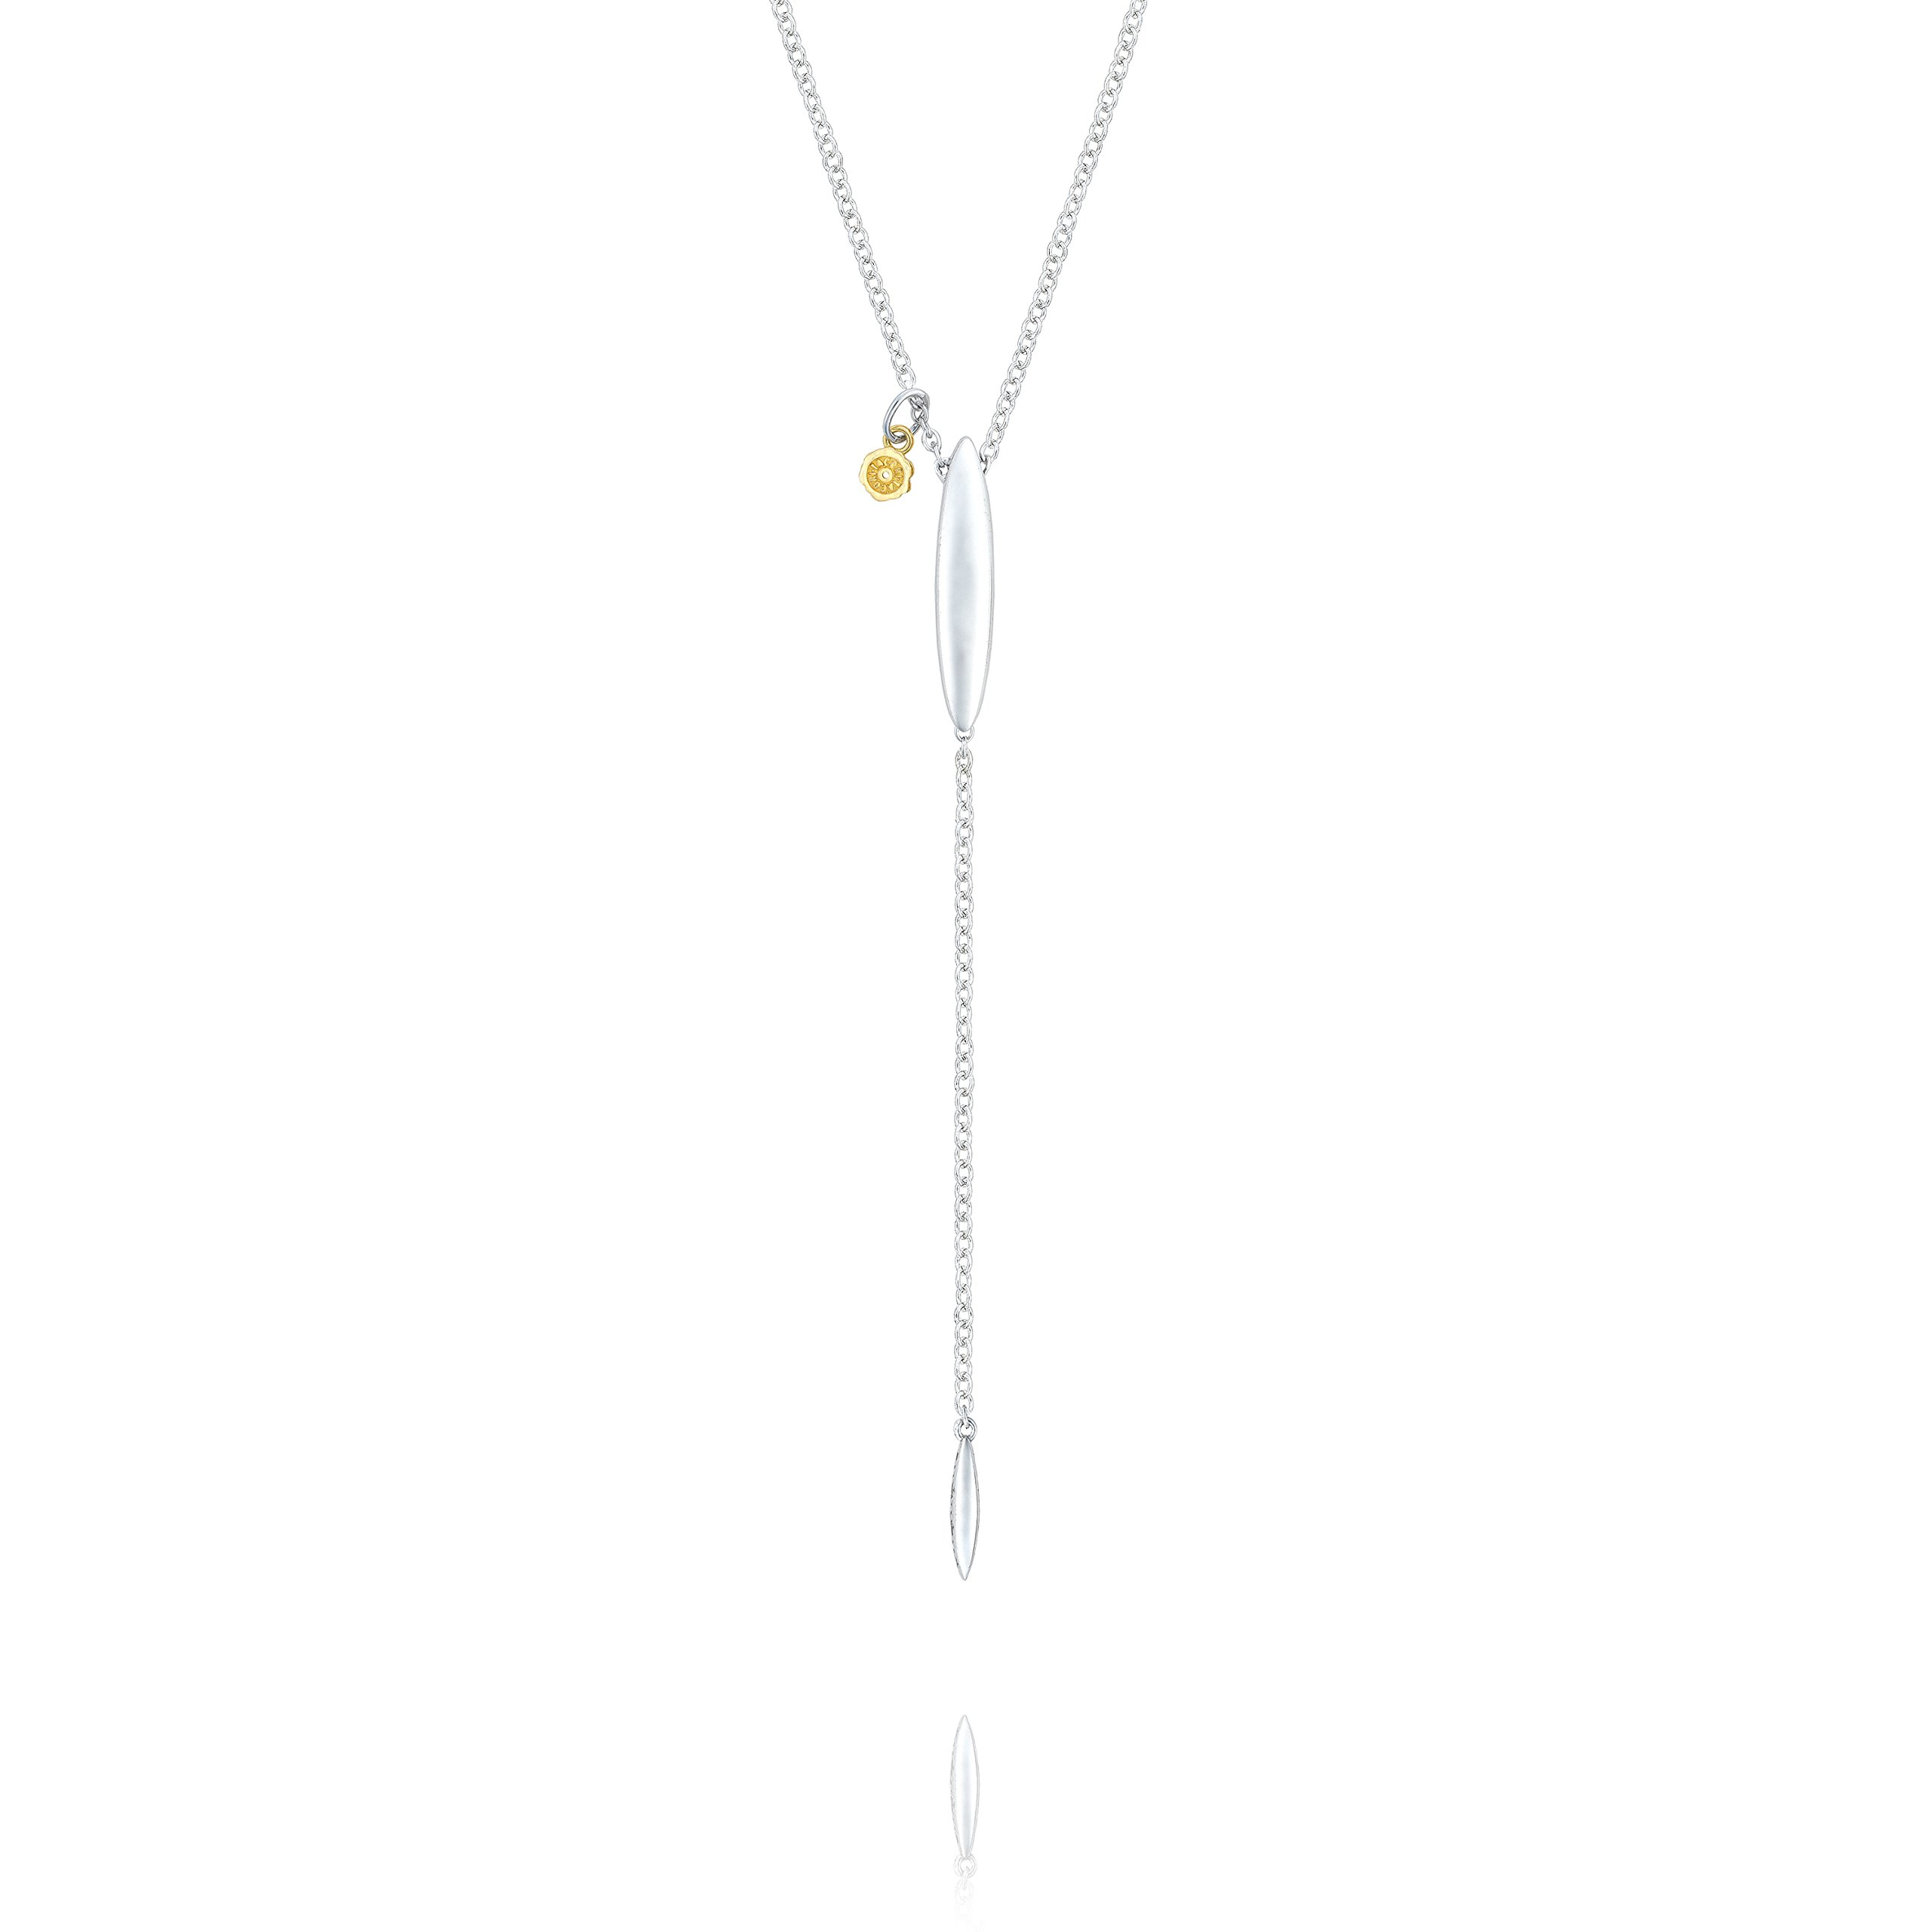 Tacori SN217 Sterling Silver Ivy Lane Surfboard Lariat Necklace